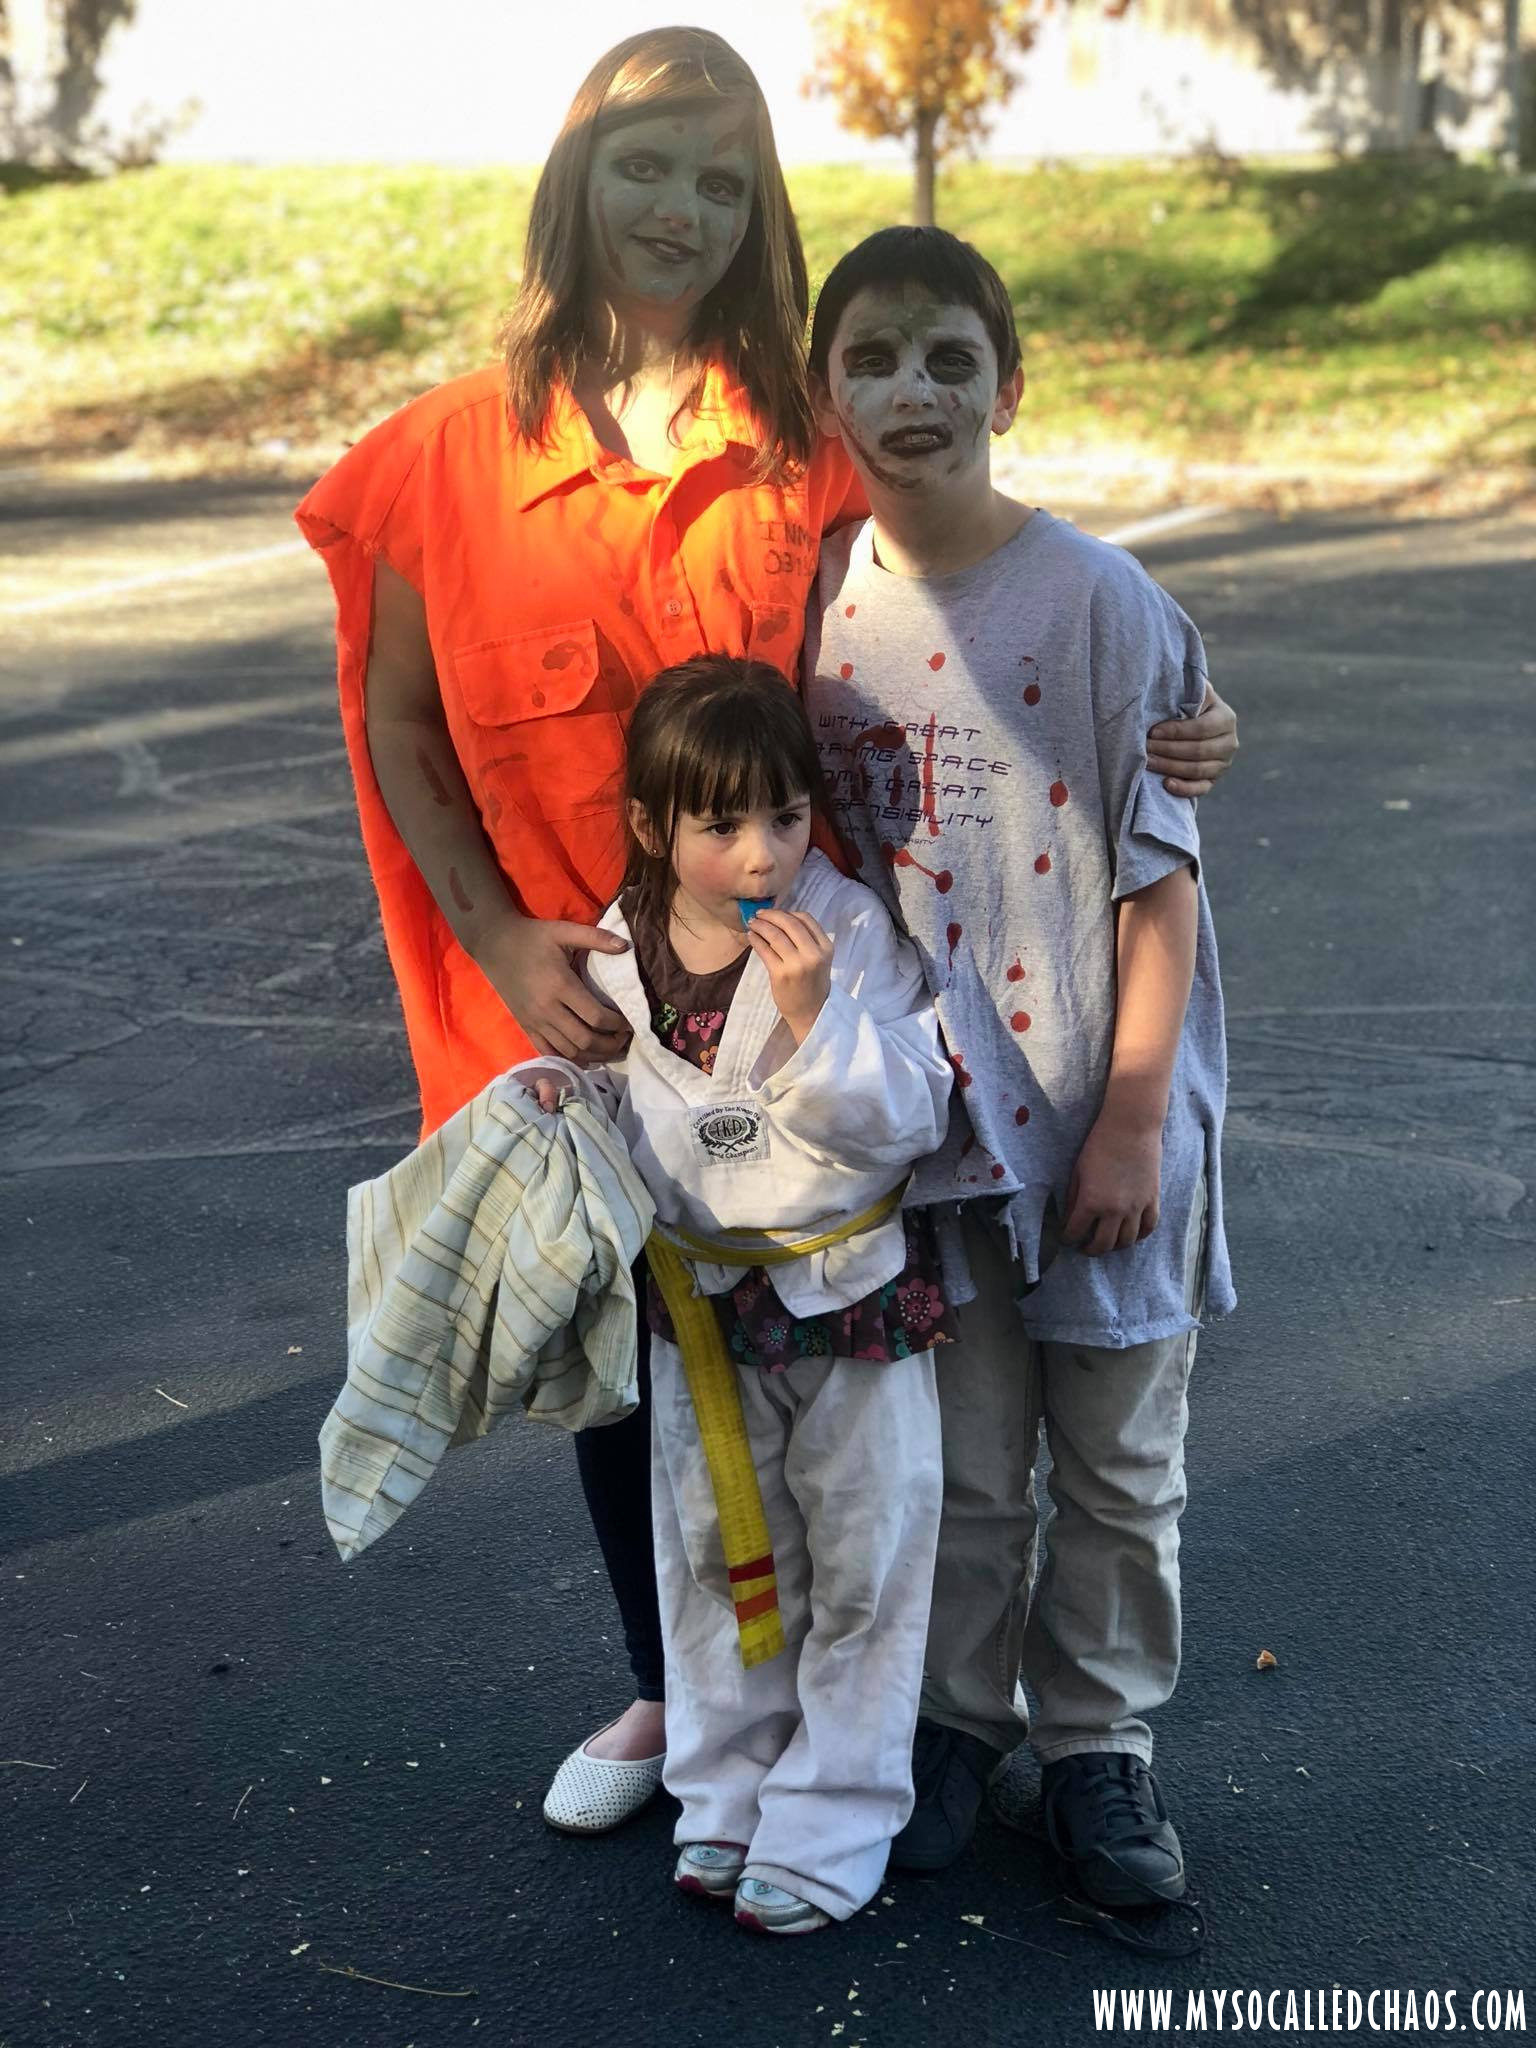 My Godkids at AOU Trunk or Treat 2017